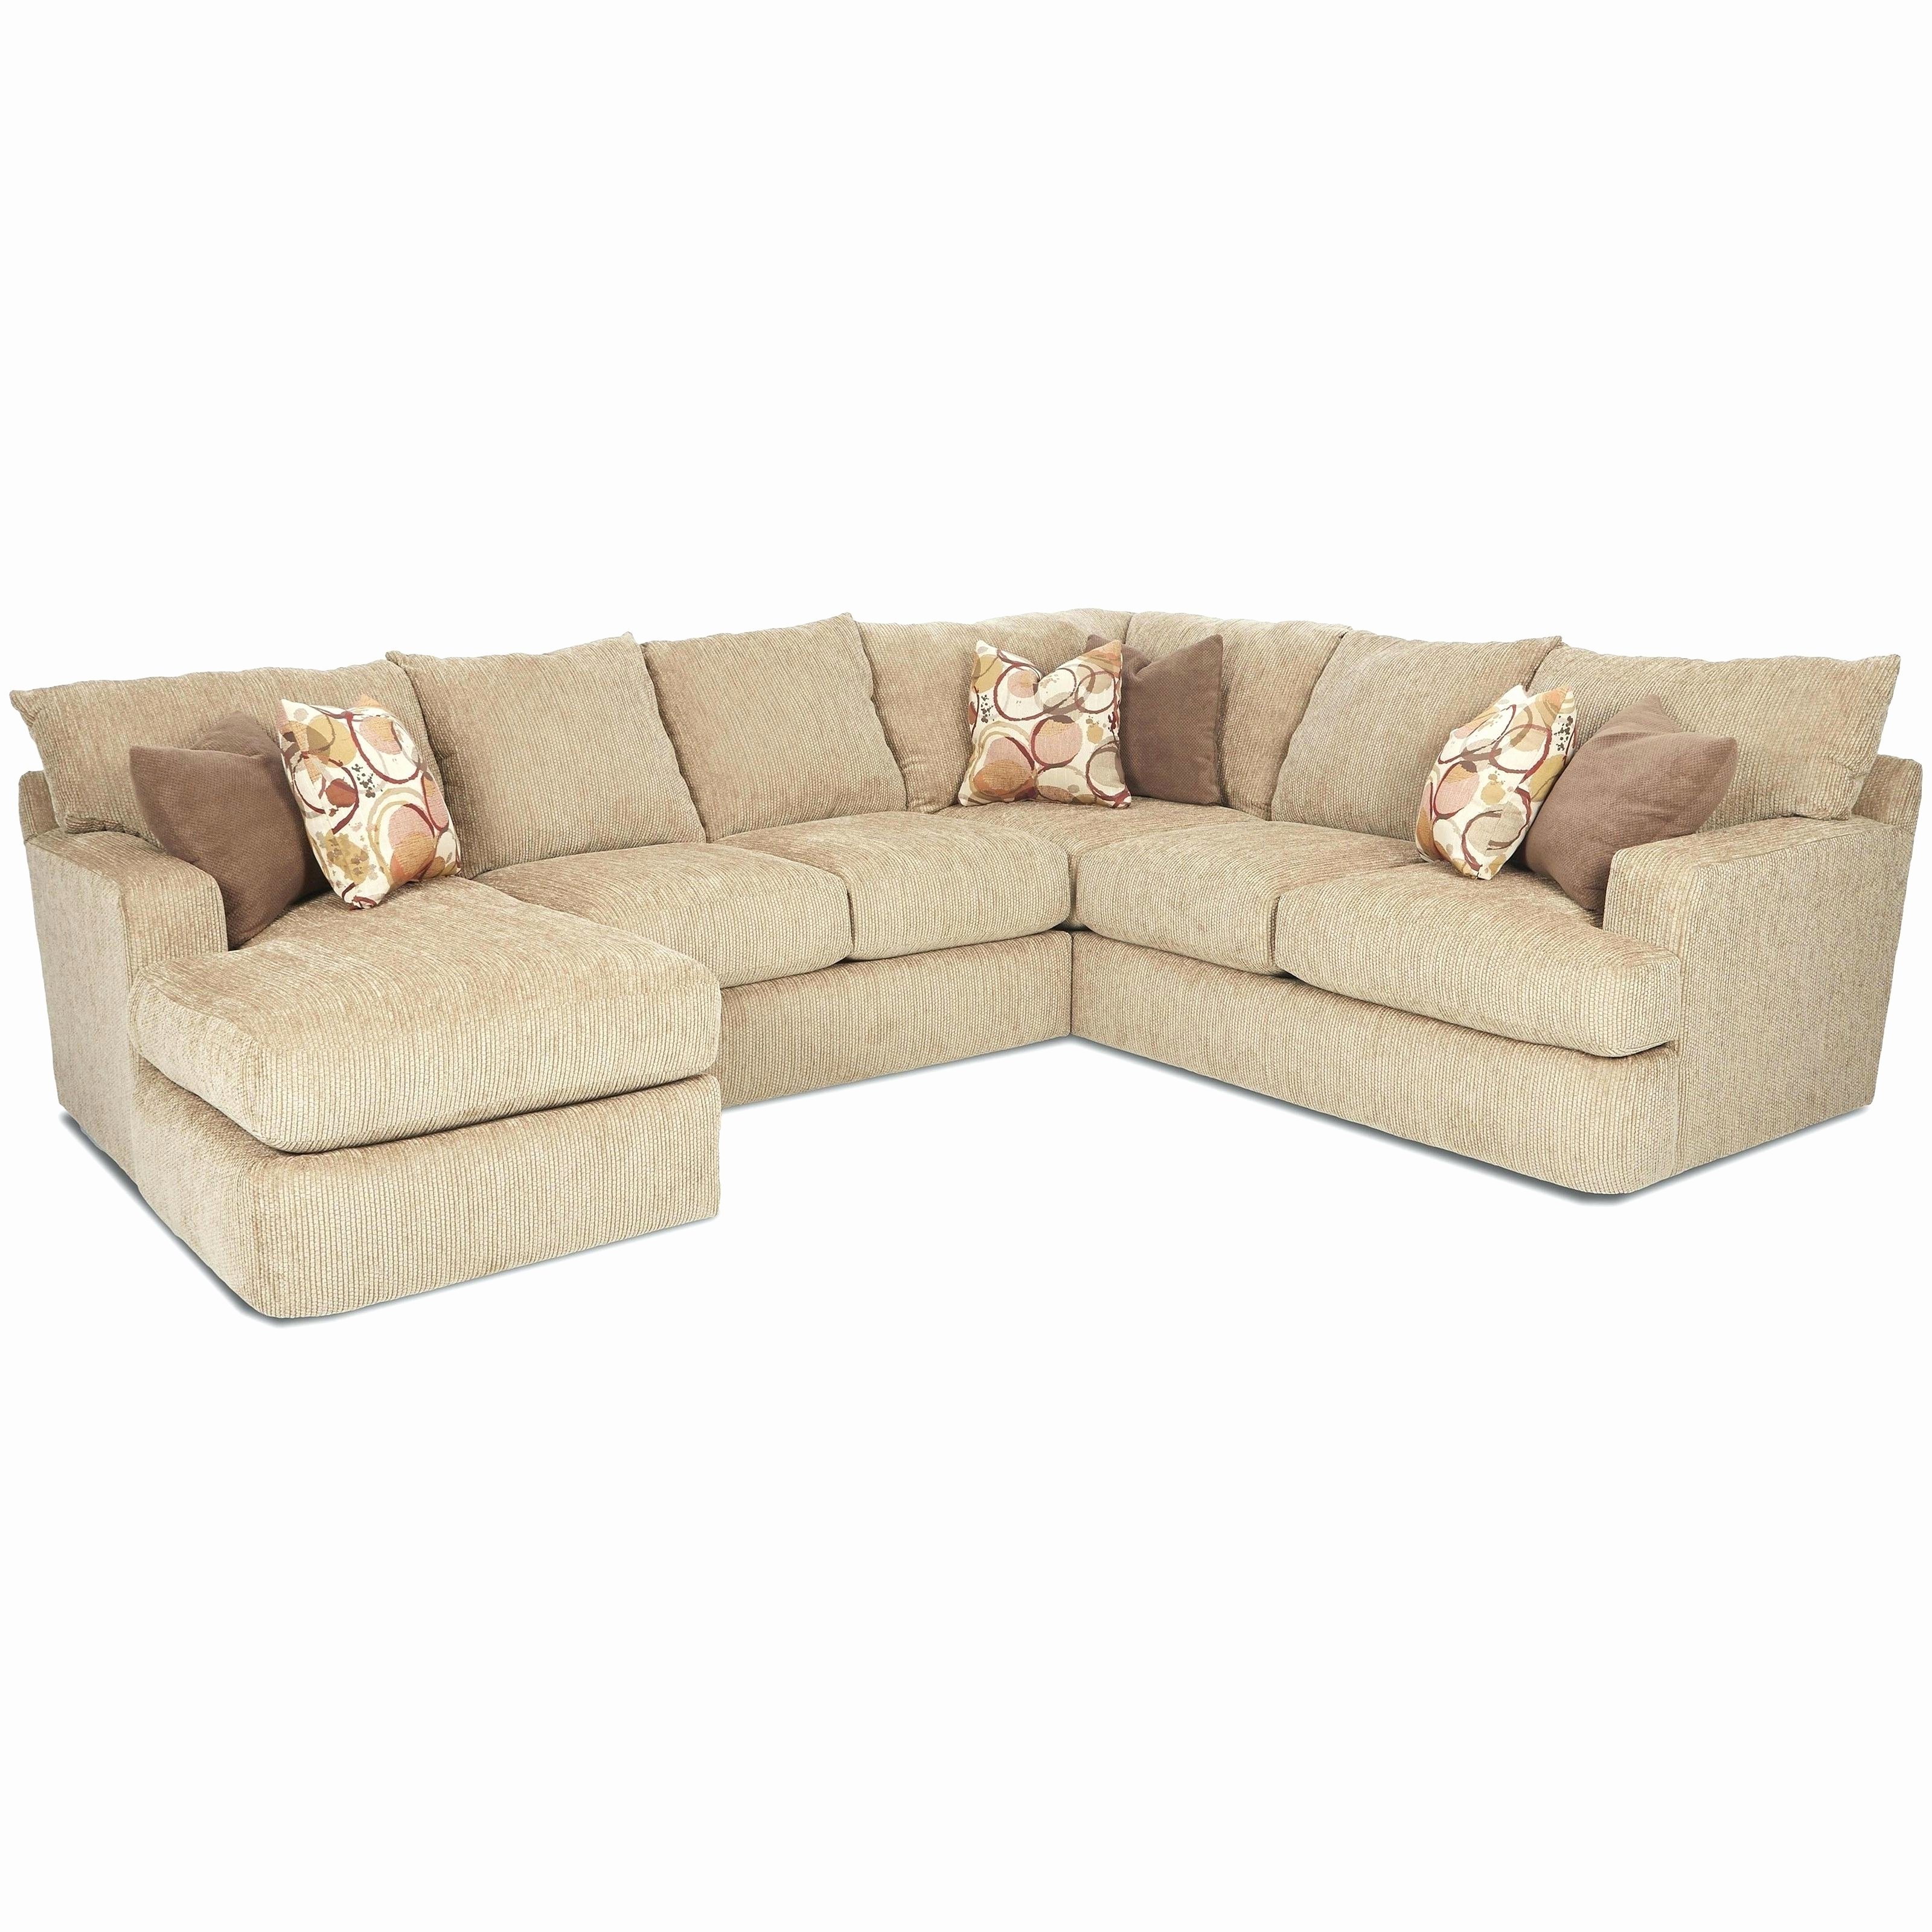 Widely Used Sofa : Lazy Boy Couches For Sale New Lazy Boy Sectional Sofa With Lazy Boy Sectional Sofas (View 19 of 20)